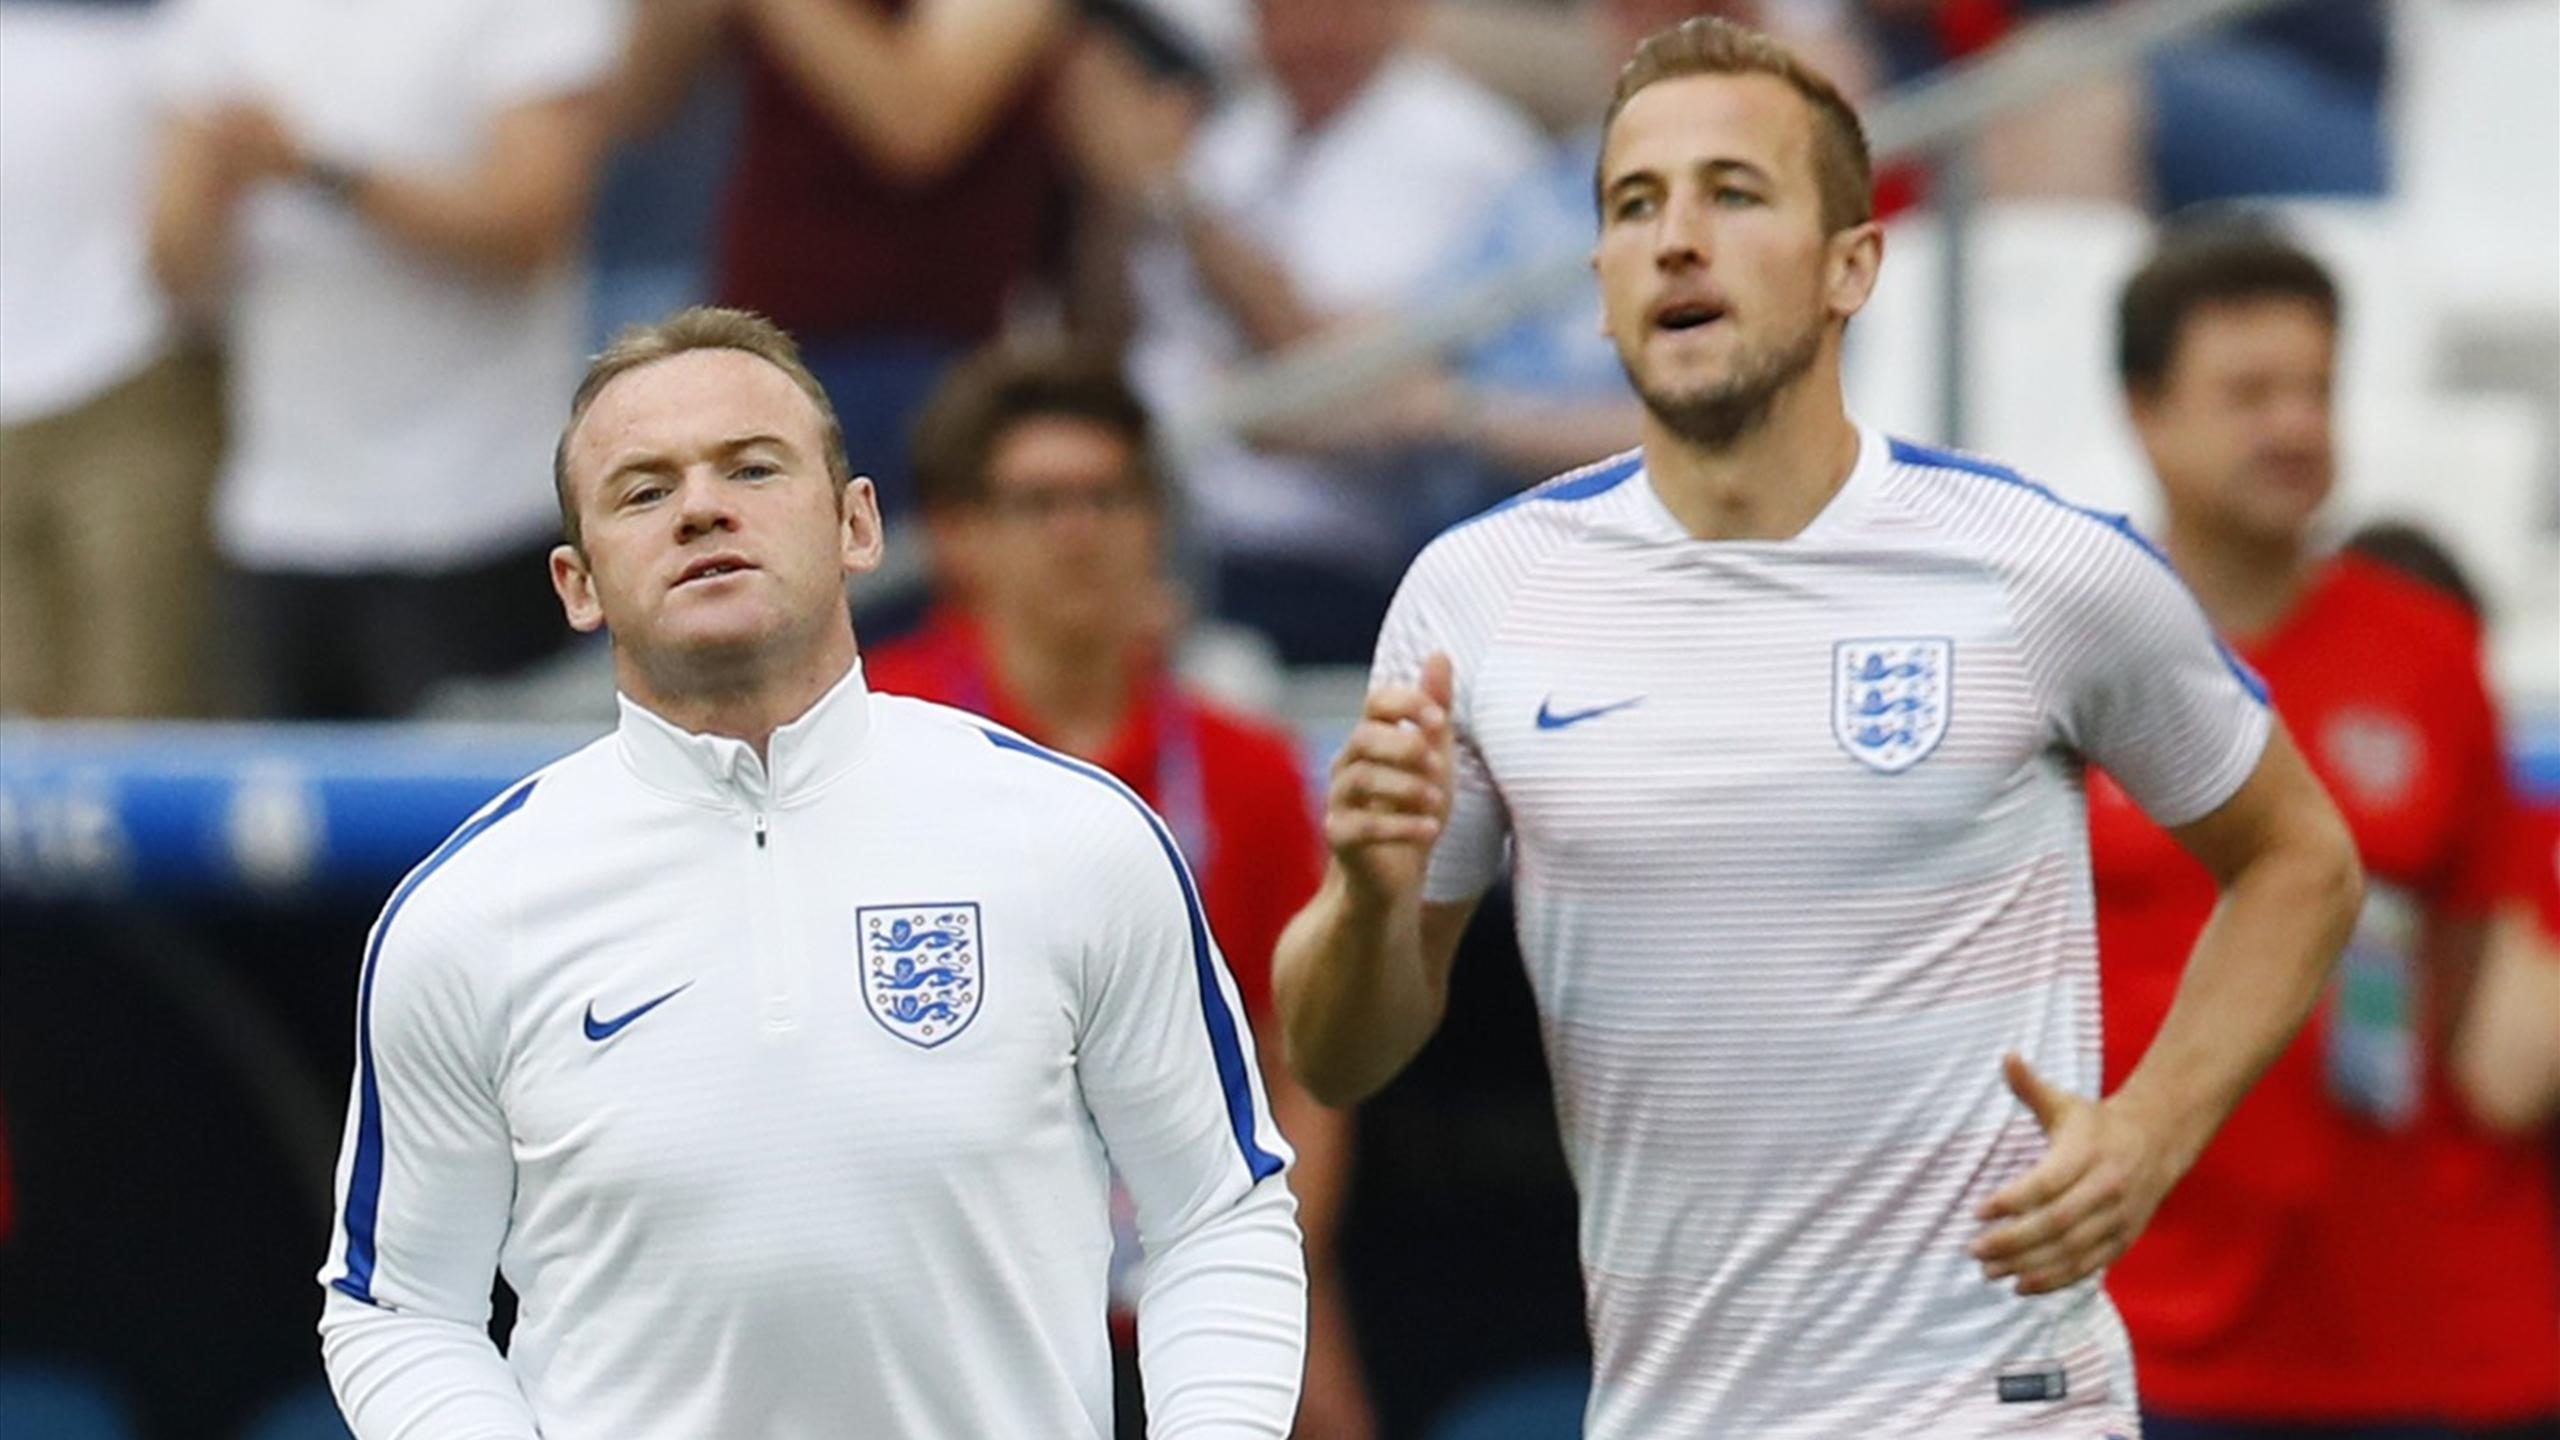 England's Wayne Rooney and Harry Kane warm up before the match against Russia